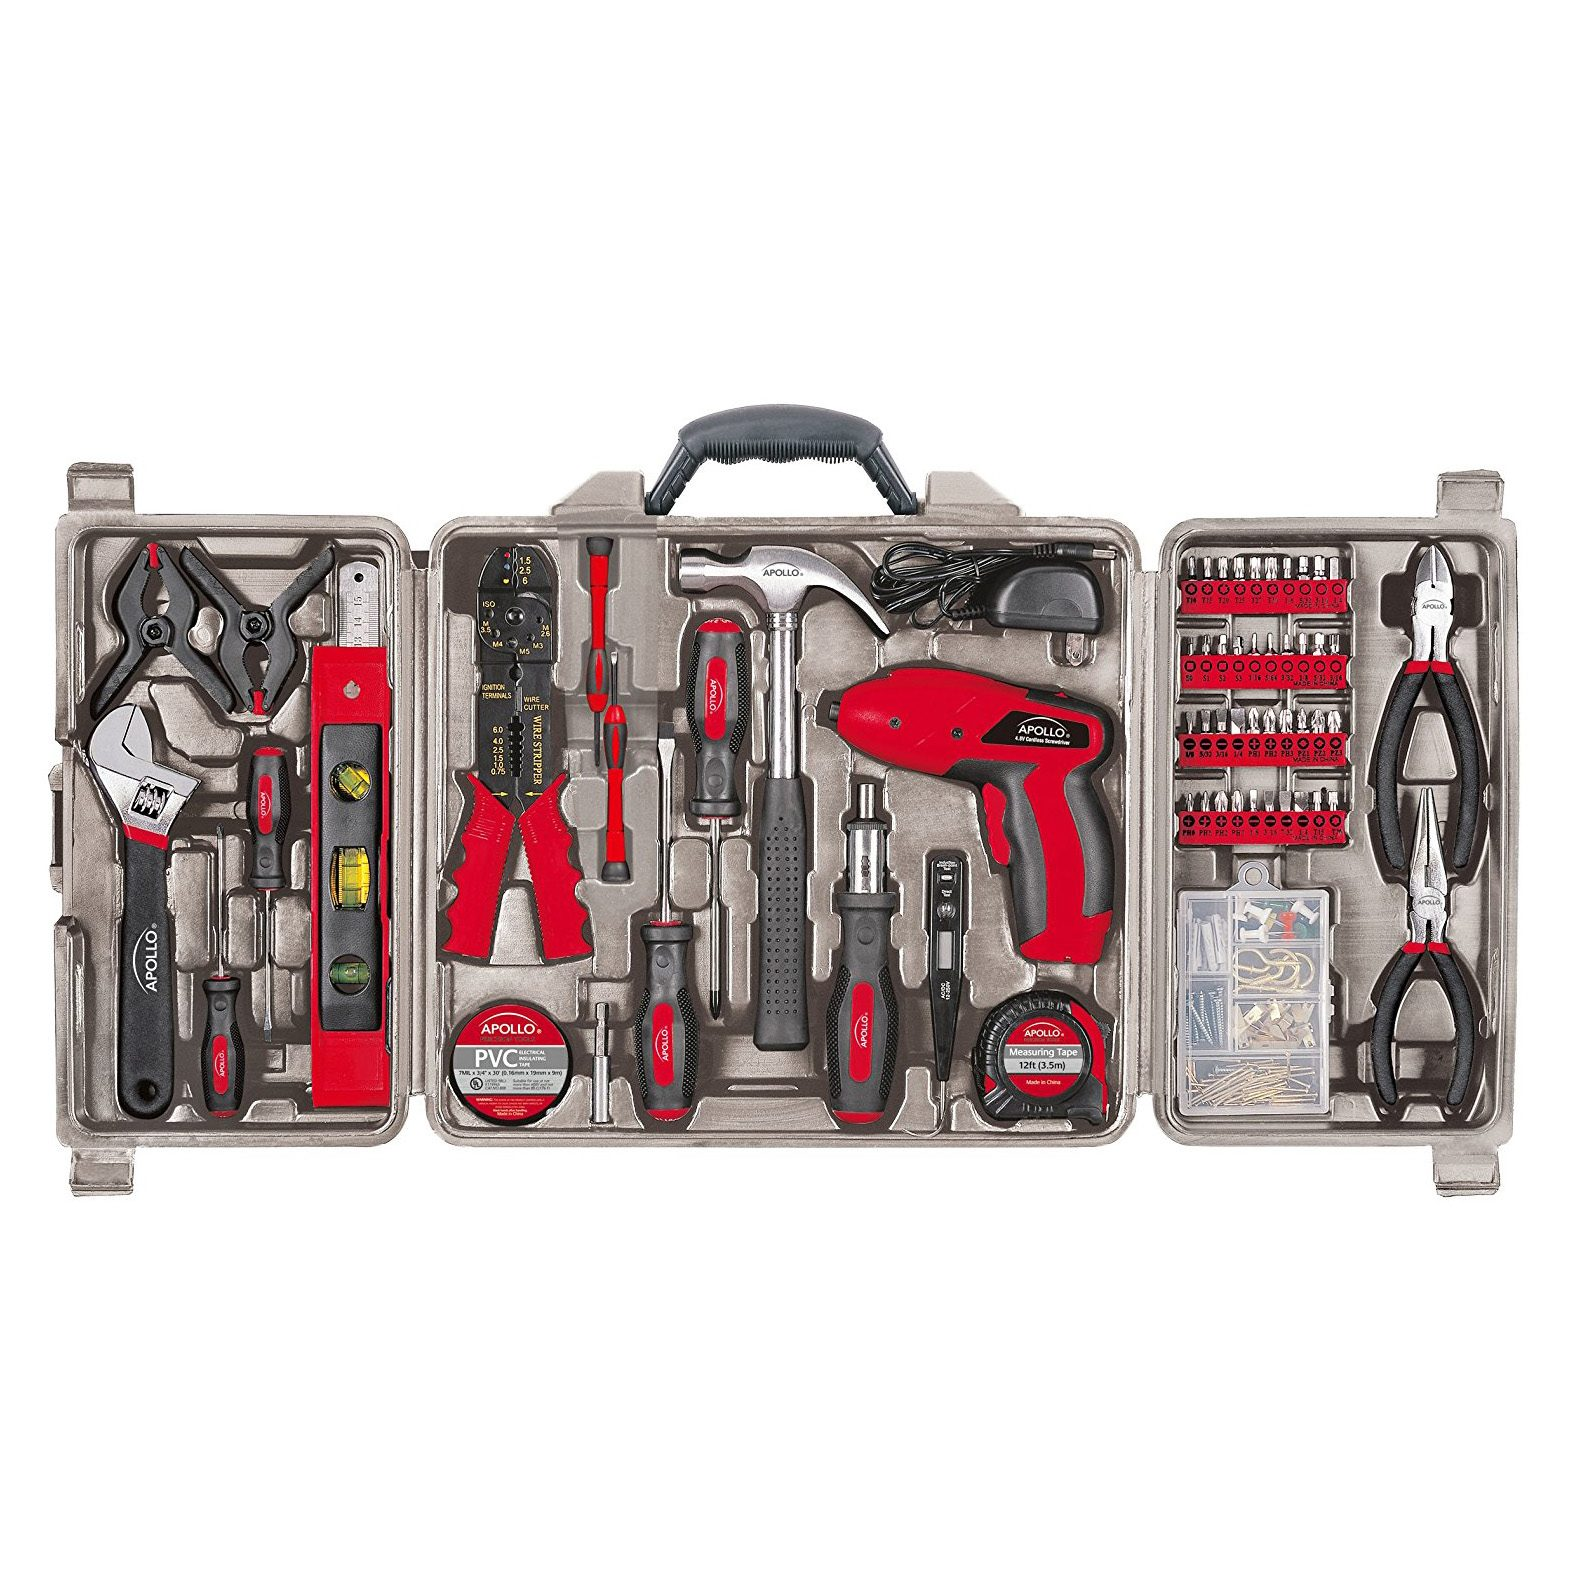 161 Piece Complete Household Tool Kit